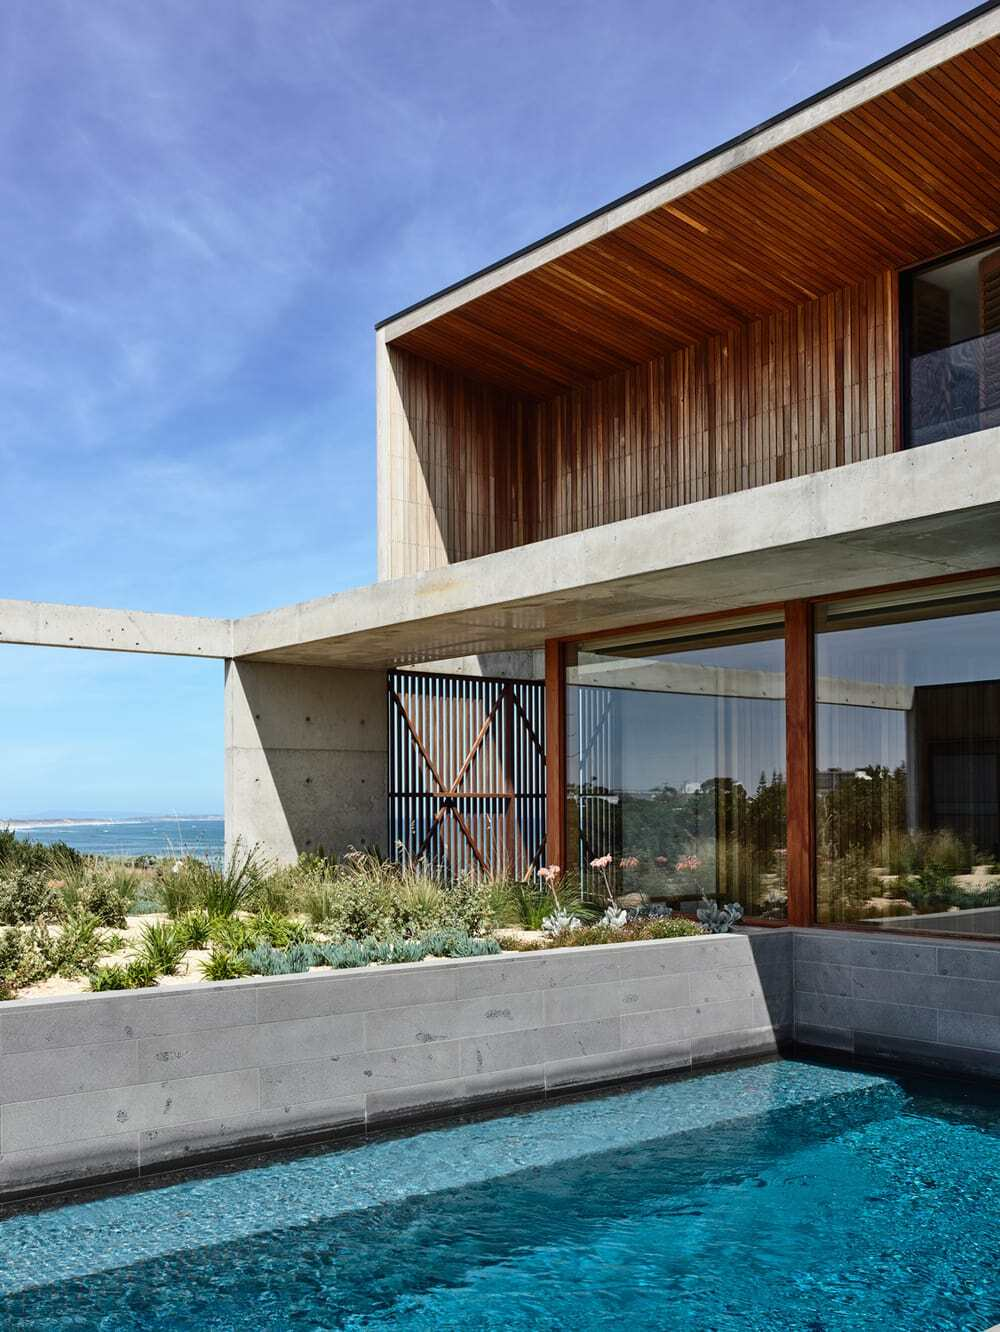 Bellarine Peninsula House by Auhaus Architecture